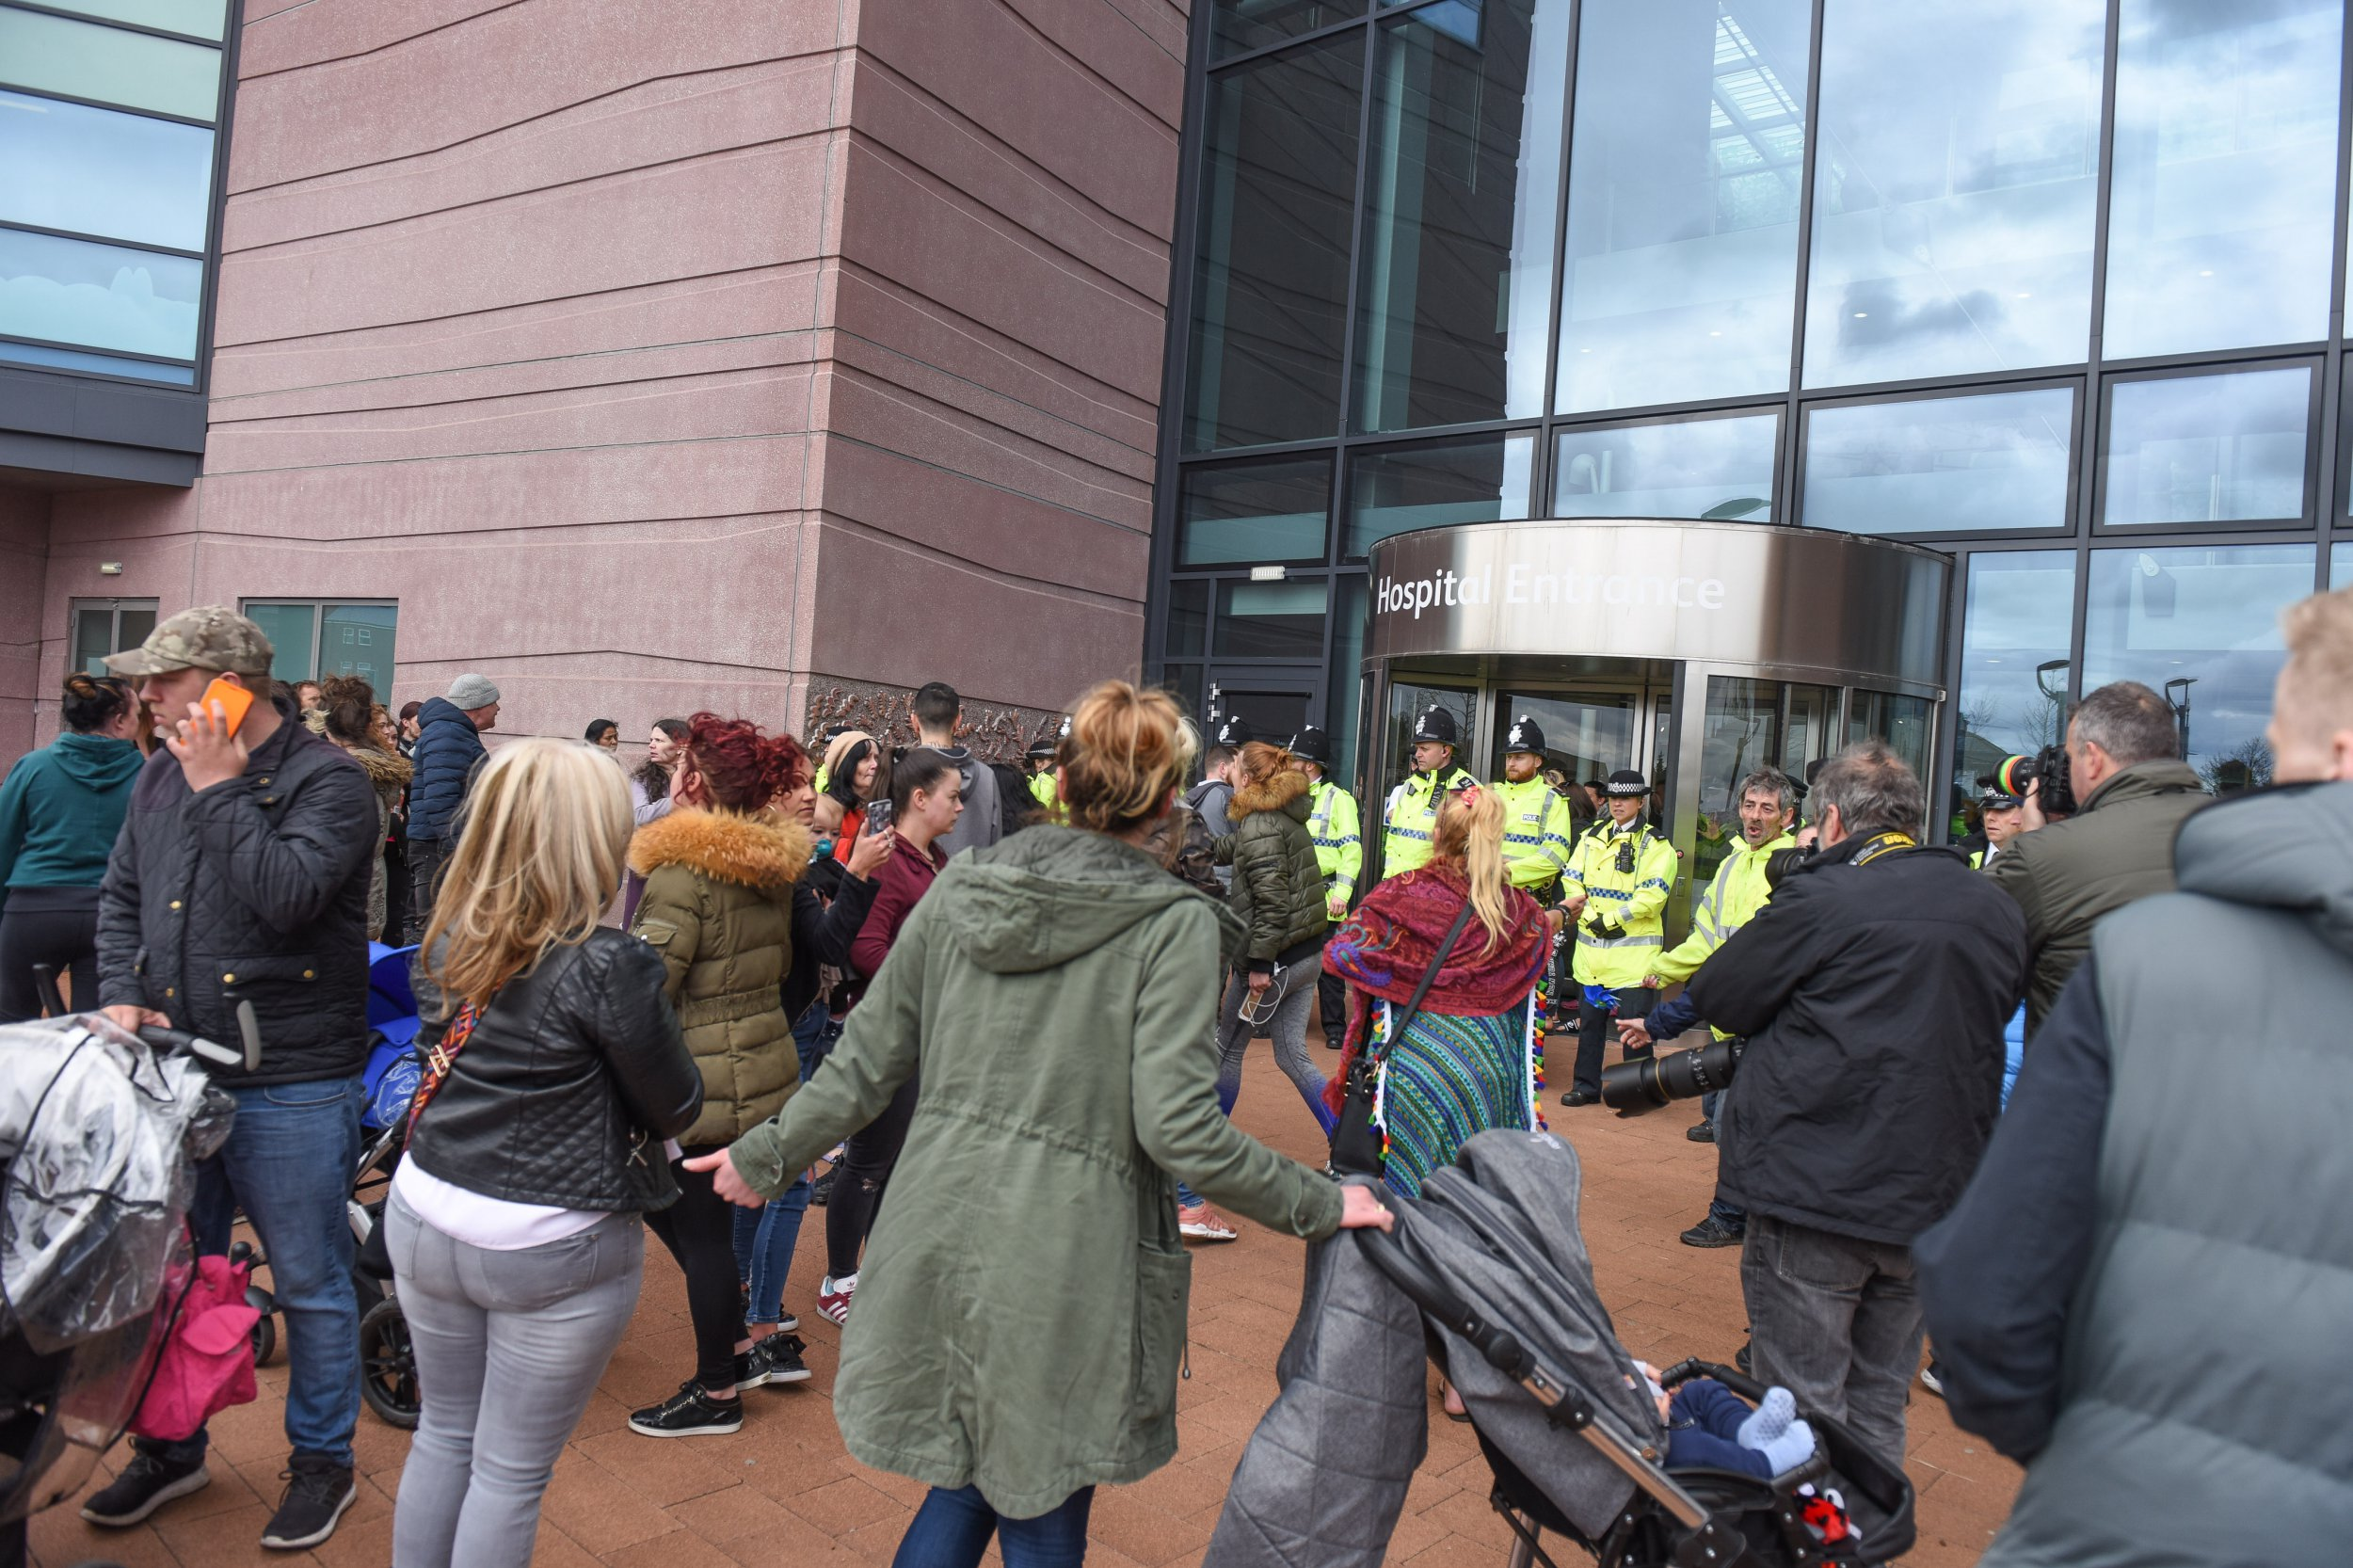 MERCURY PRESS. Liverpool, UK. 23/4/18. Pictured: Protestors attempt to storm Alder Hey hospital but are held back by a line of police